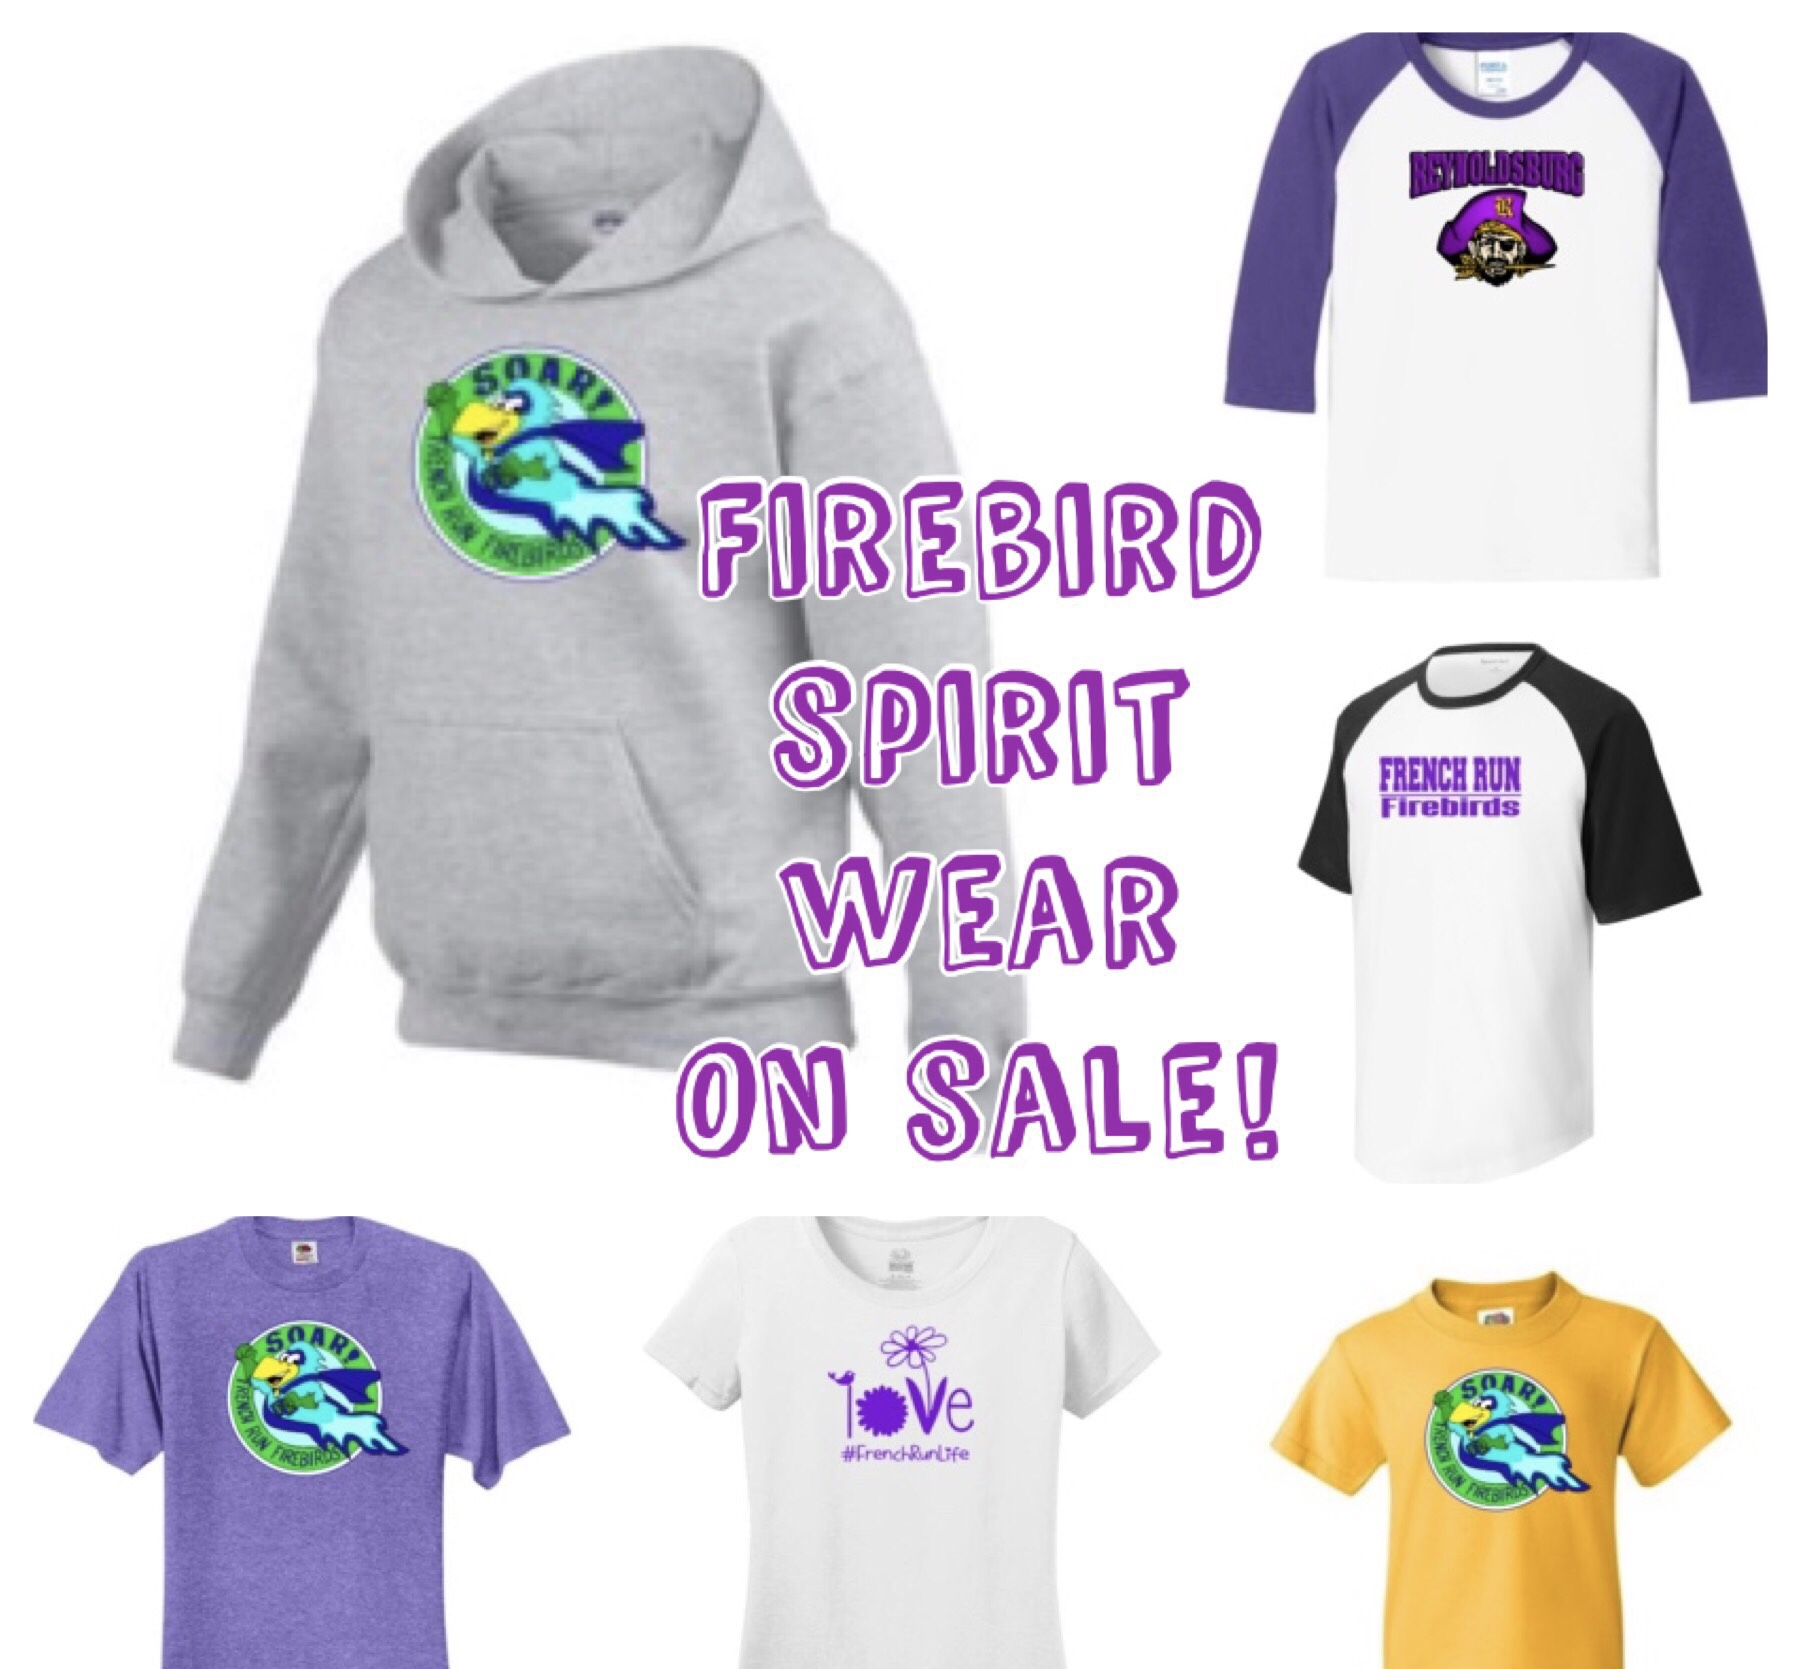 Selection of spirit wear shitrs